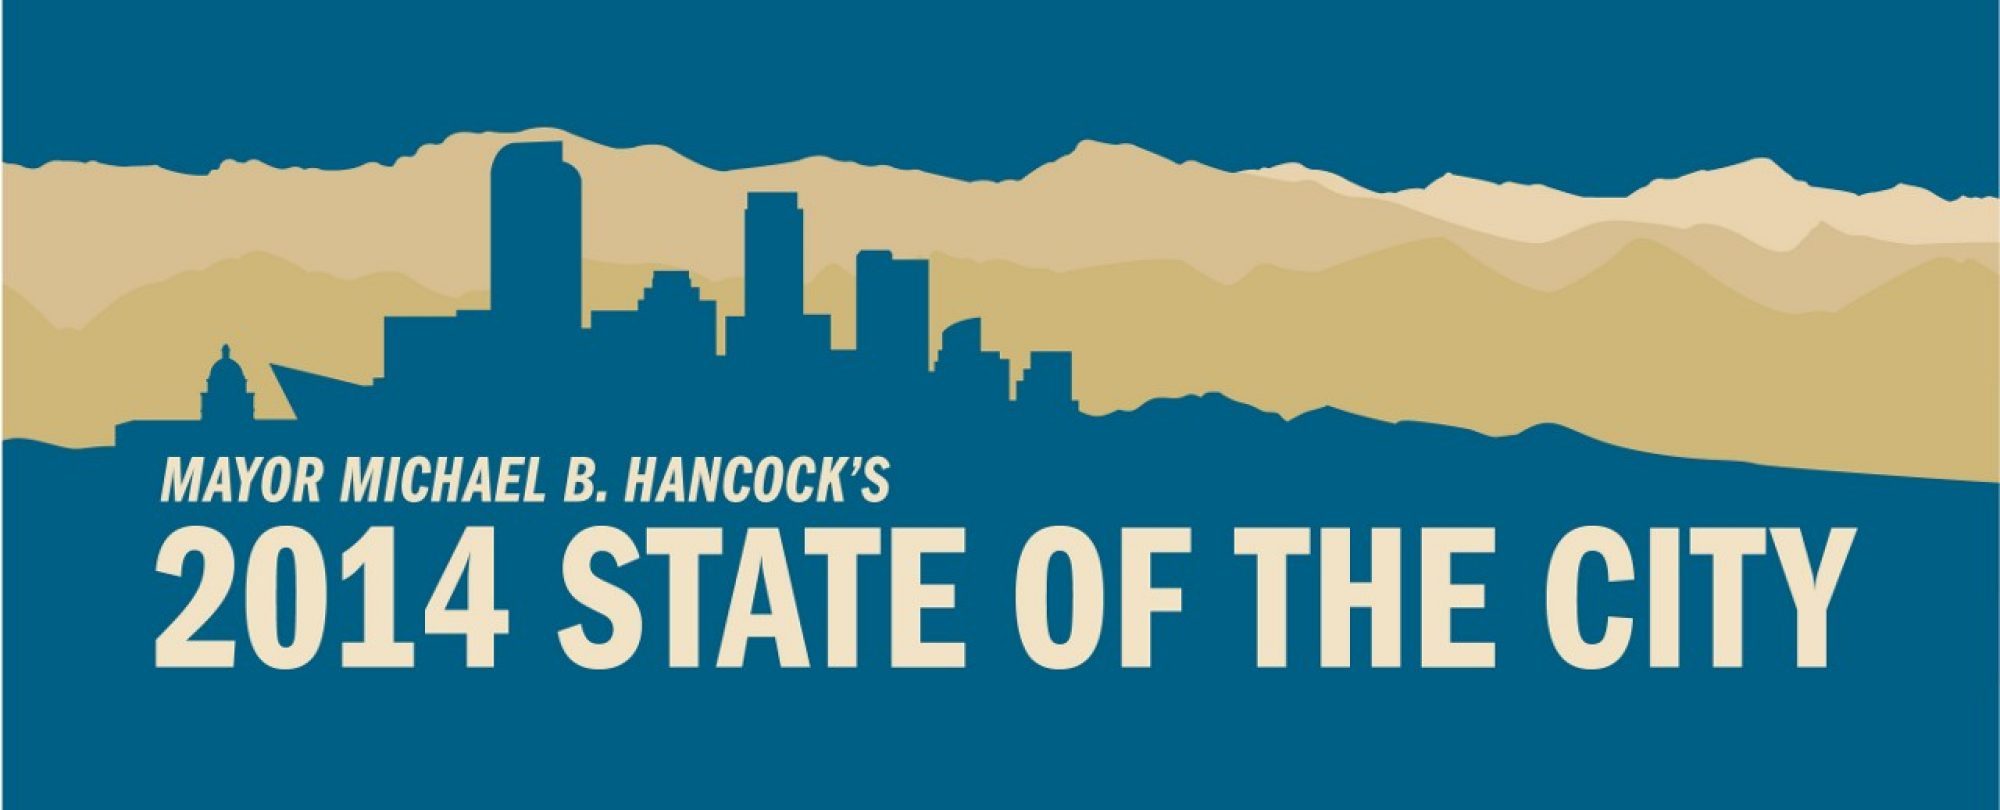 The State of the City